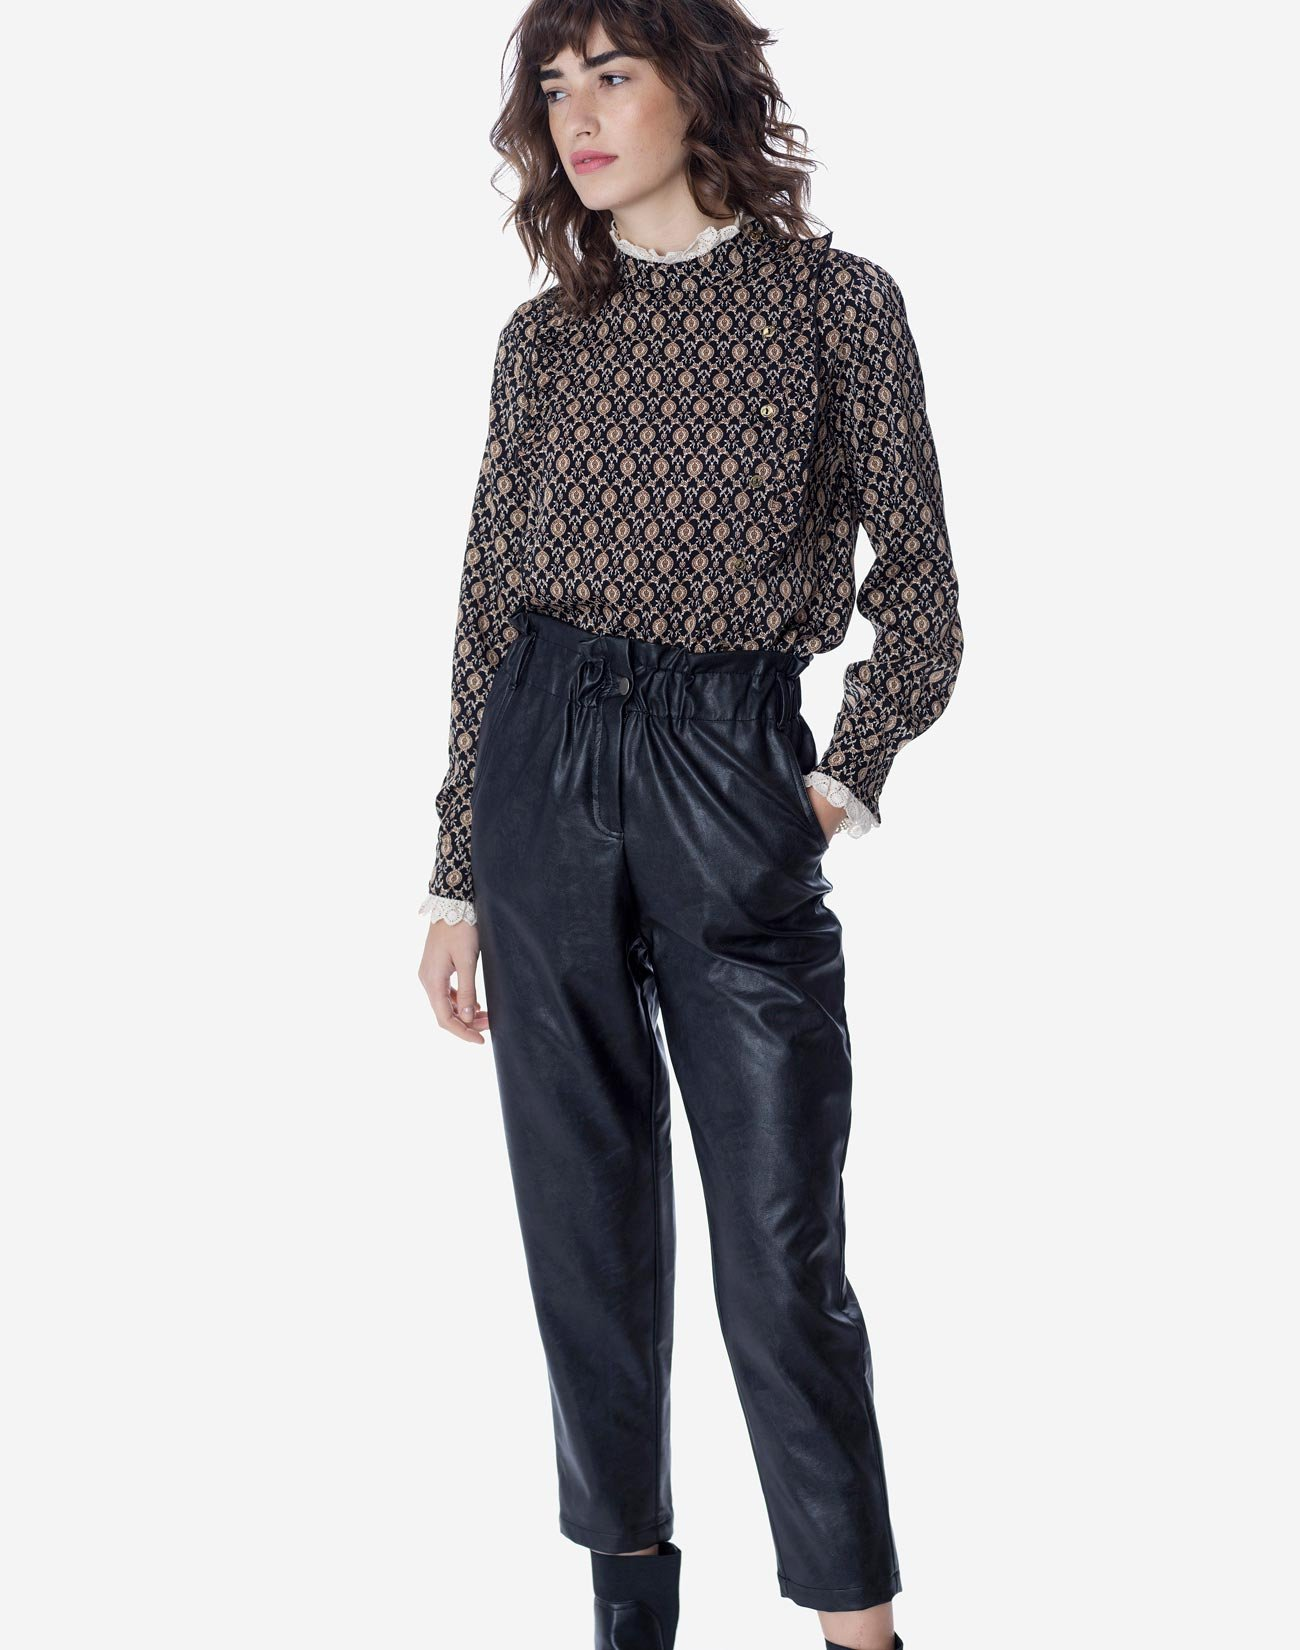 Printed blouse with lace detail